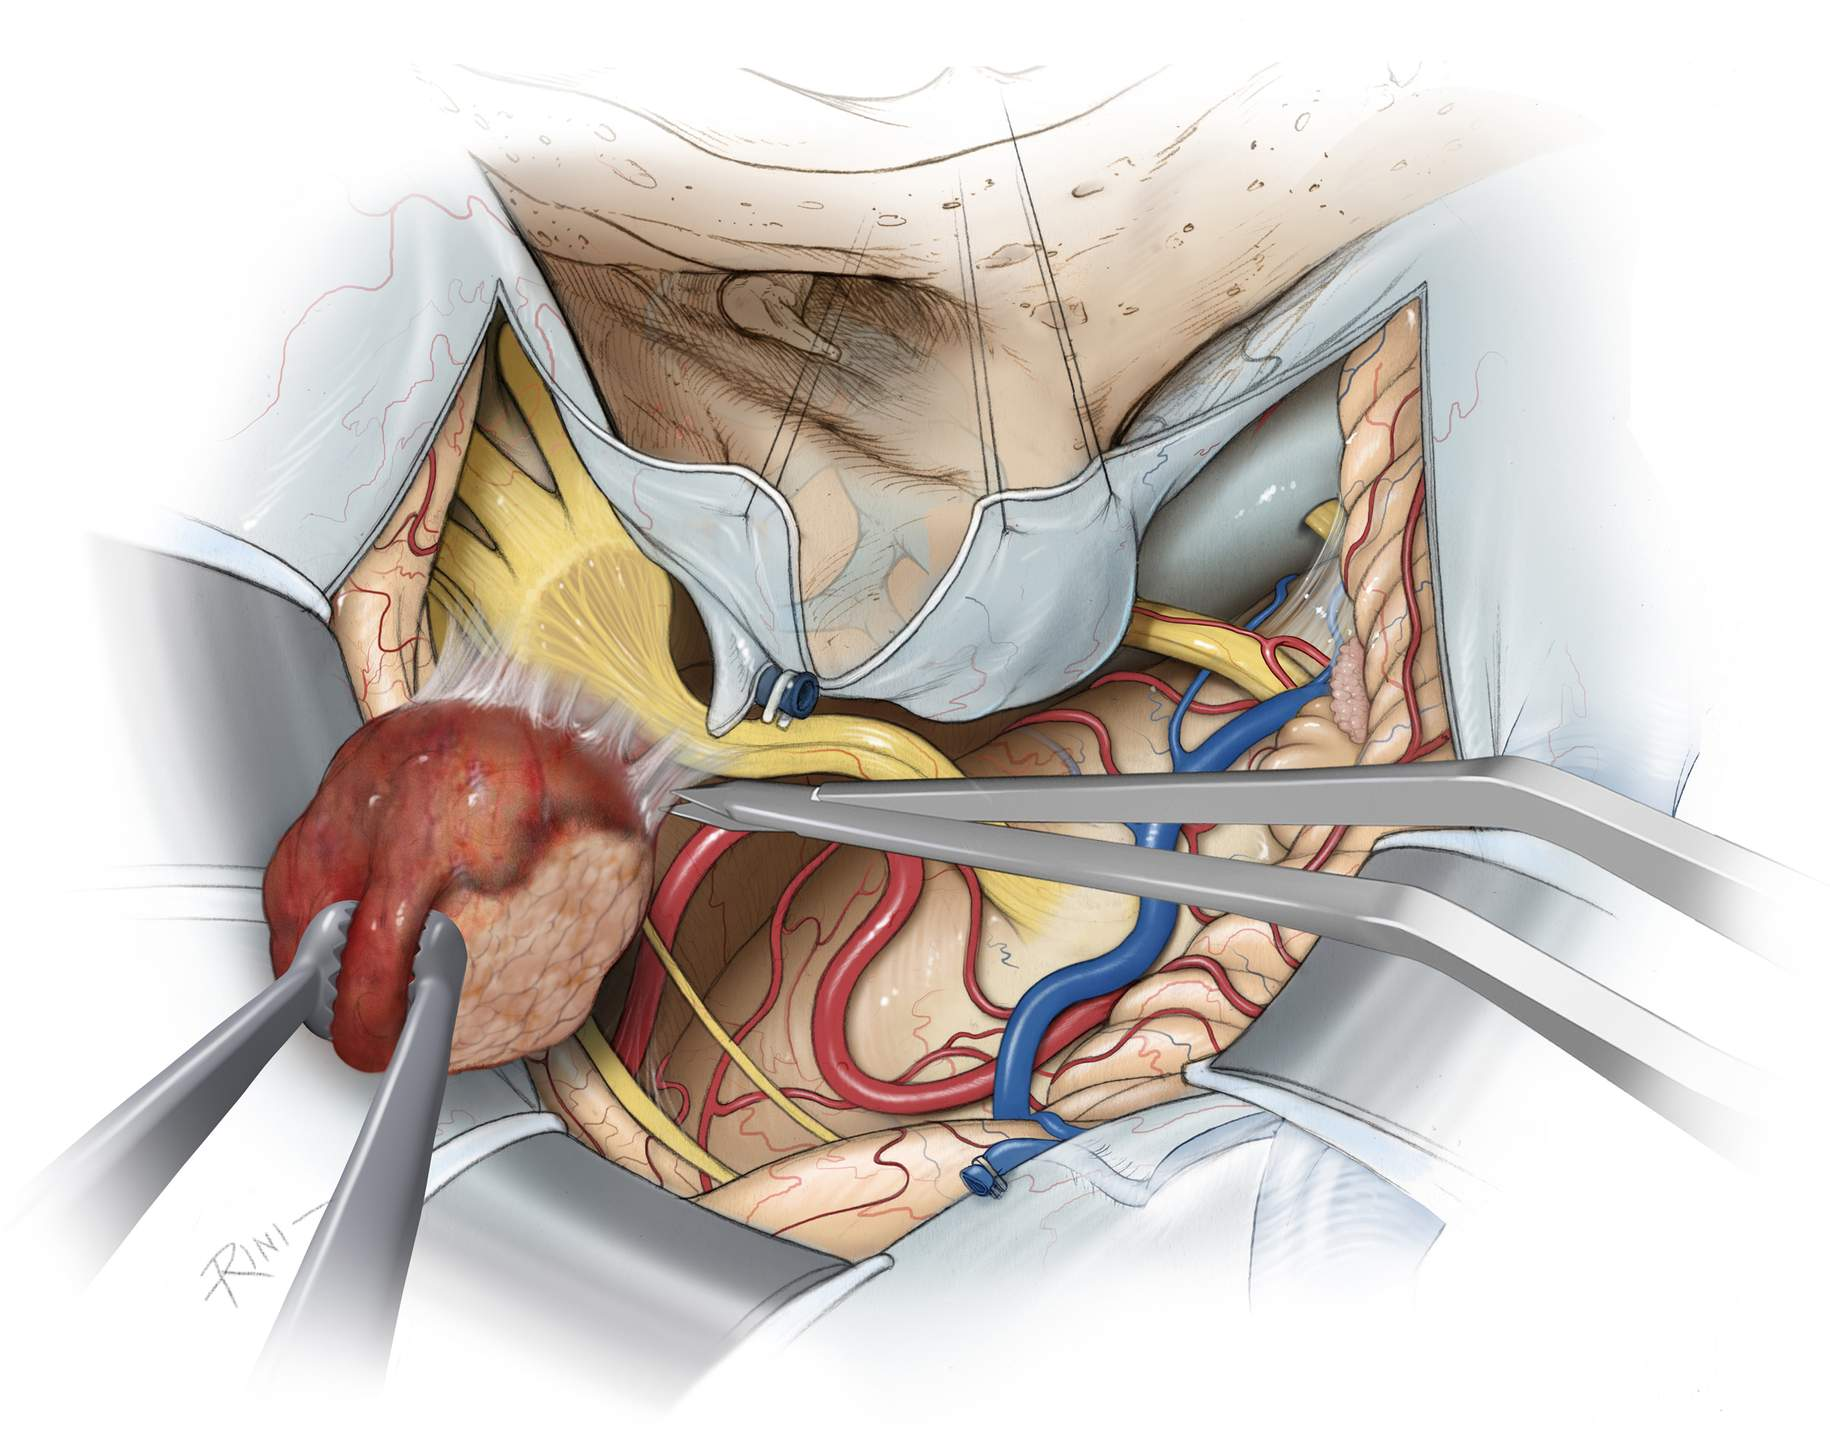 Figure 10: The last piece of the tumor is delivered out of the Meckel's cave. The perforating vessels in this area and to the diencephalon can be easily injured despite their delicate handling. Their spasm can lead to devastating consequences including thalamic infarction. I use papaverine soaked pledgets to periodically bathe the perforators during the entire dissection process.